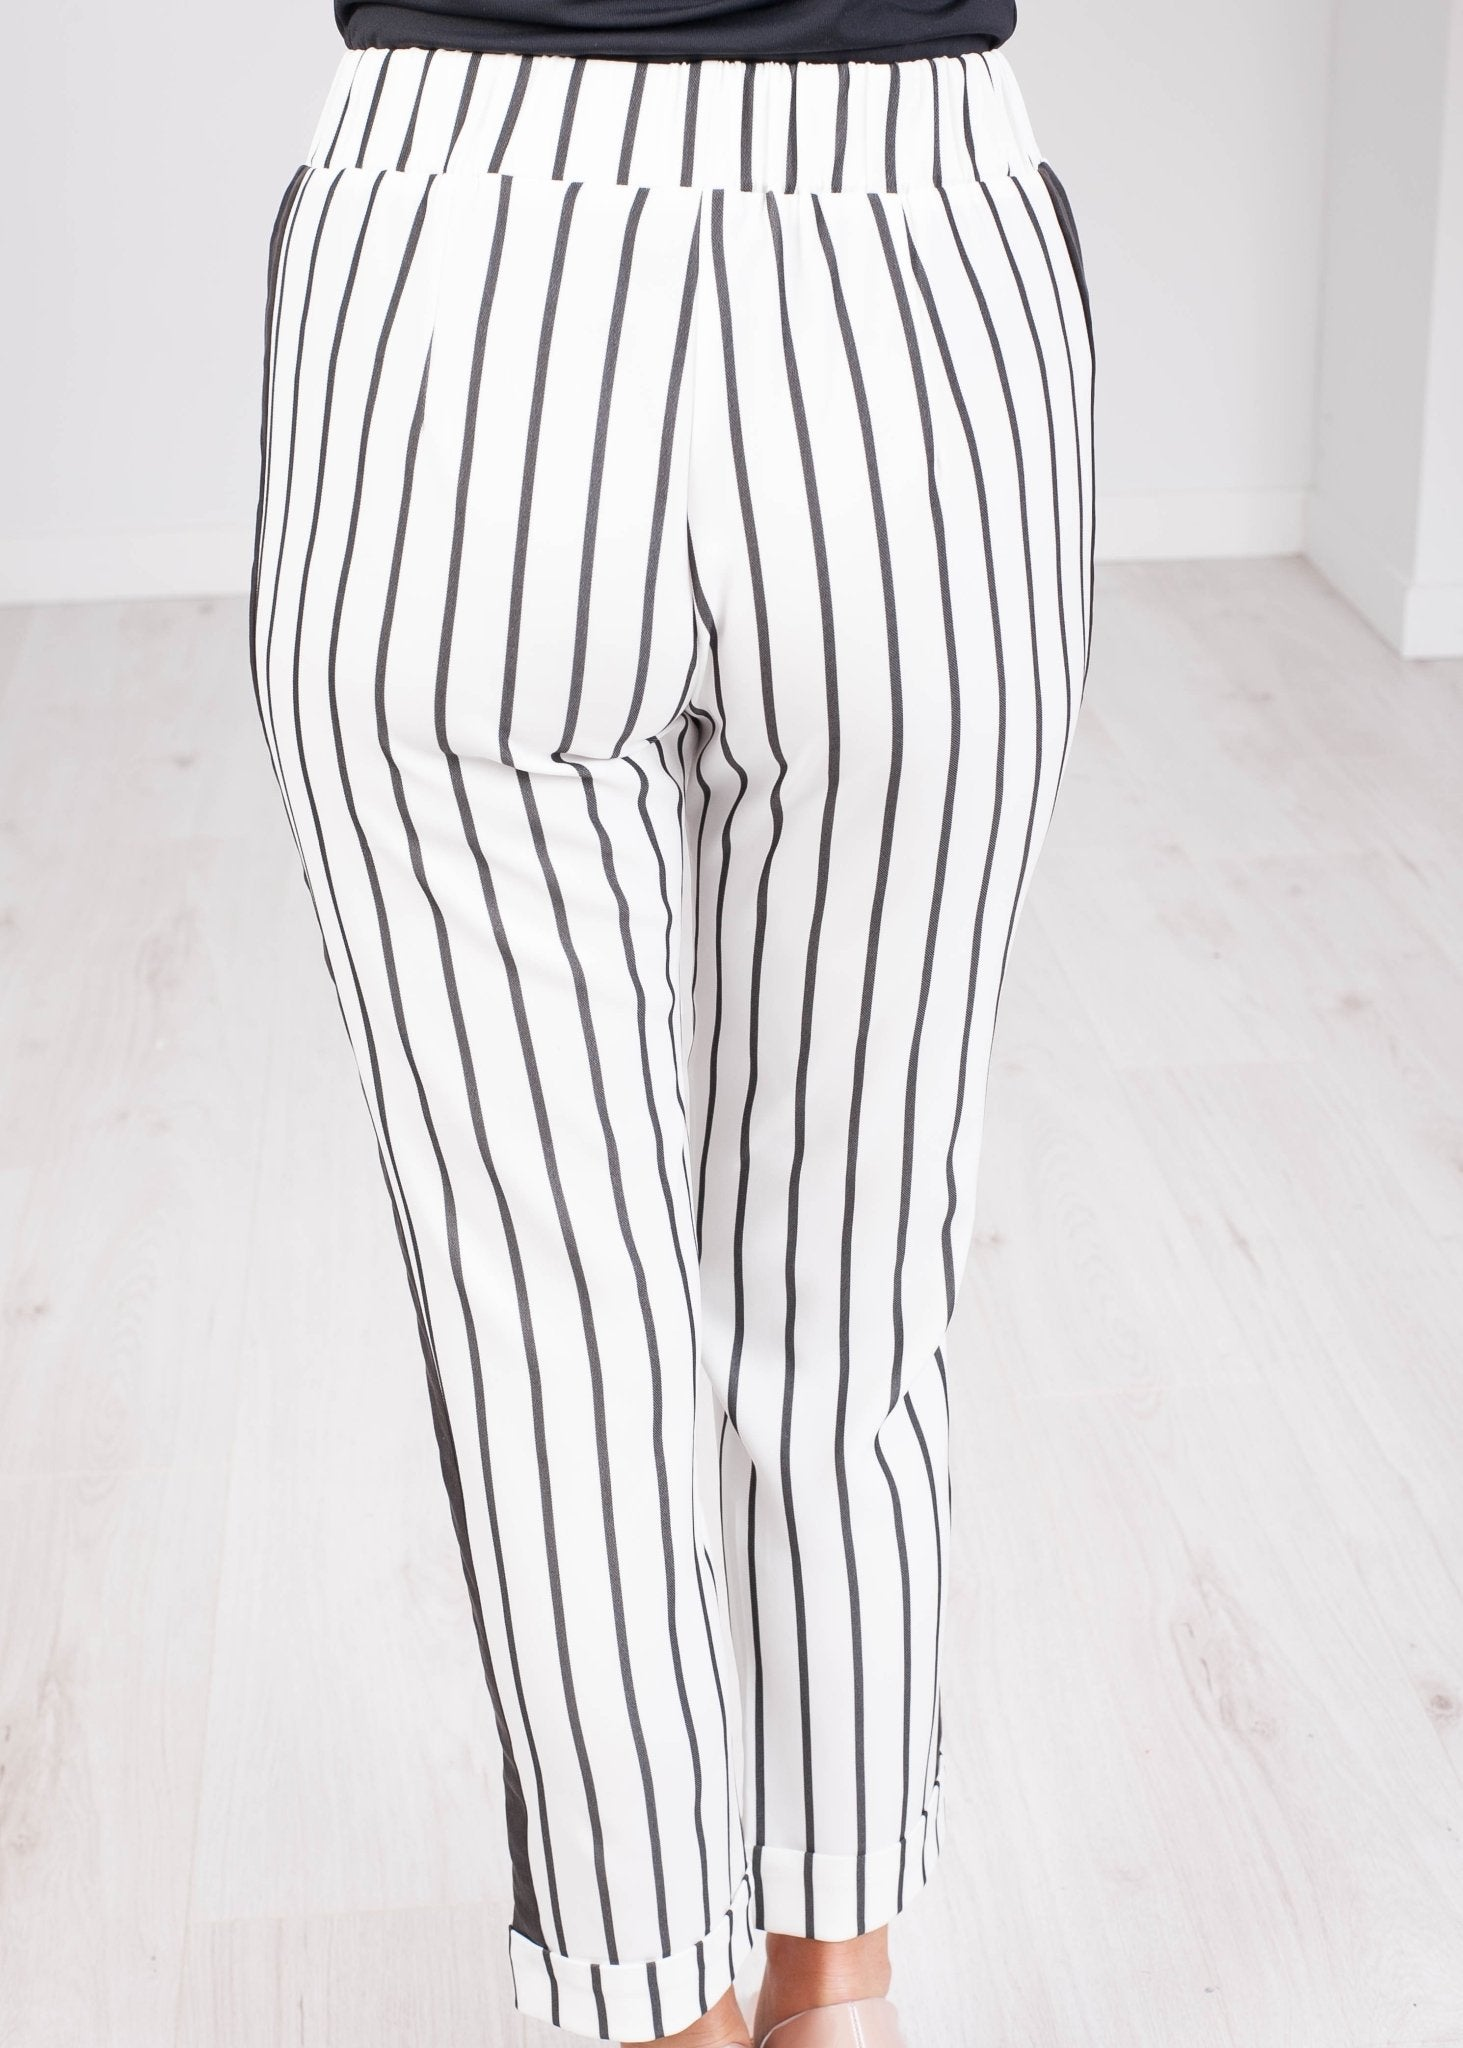 Alana Stripe Trousers - The Walk in Wardrobe